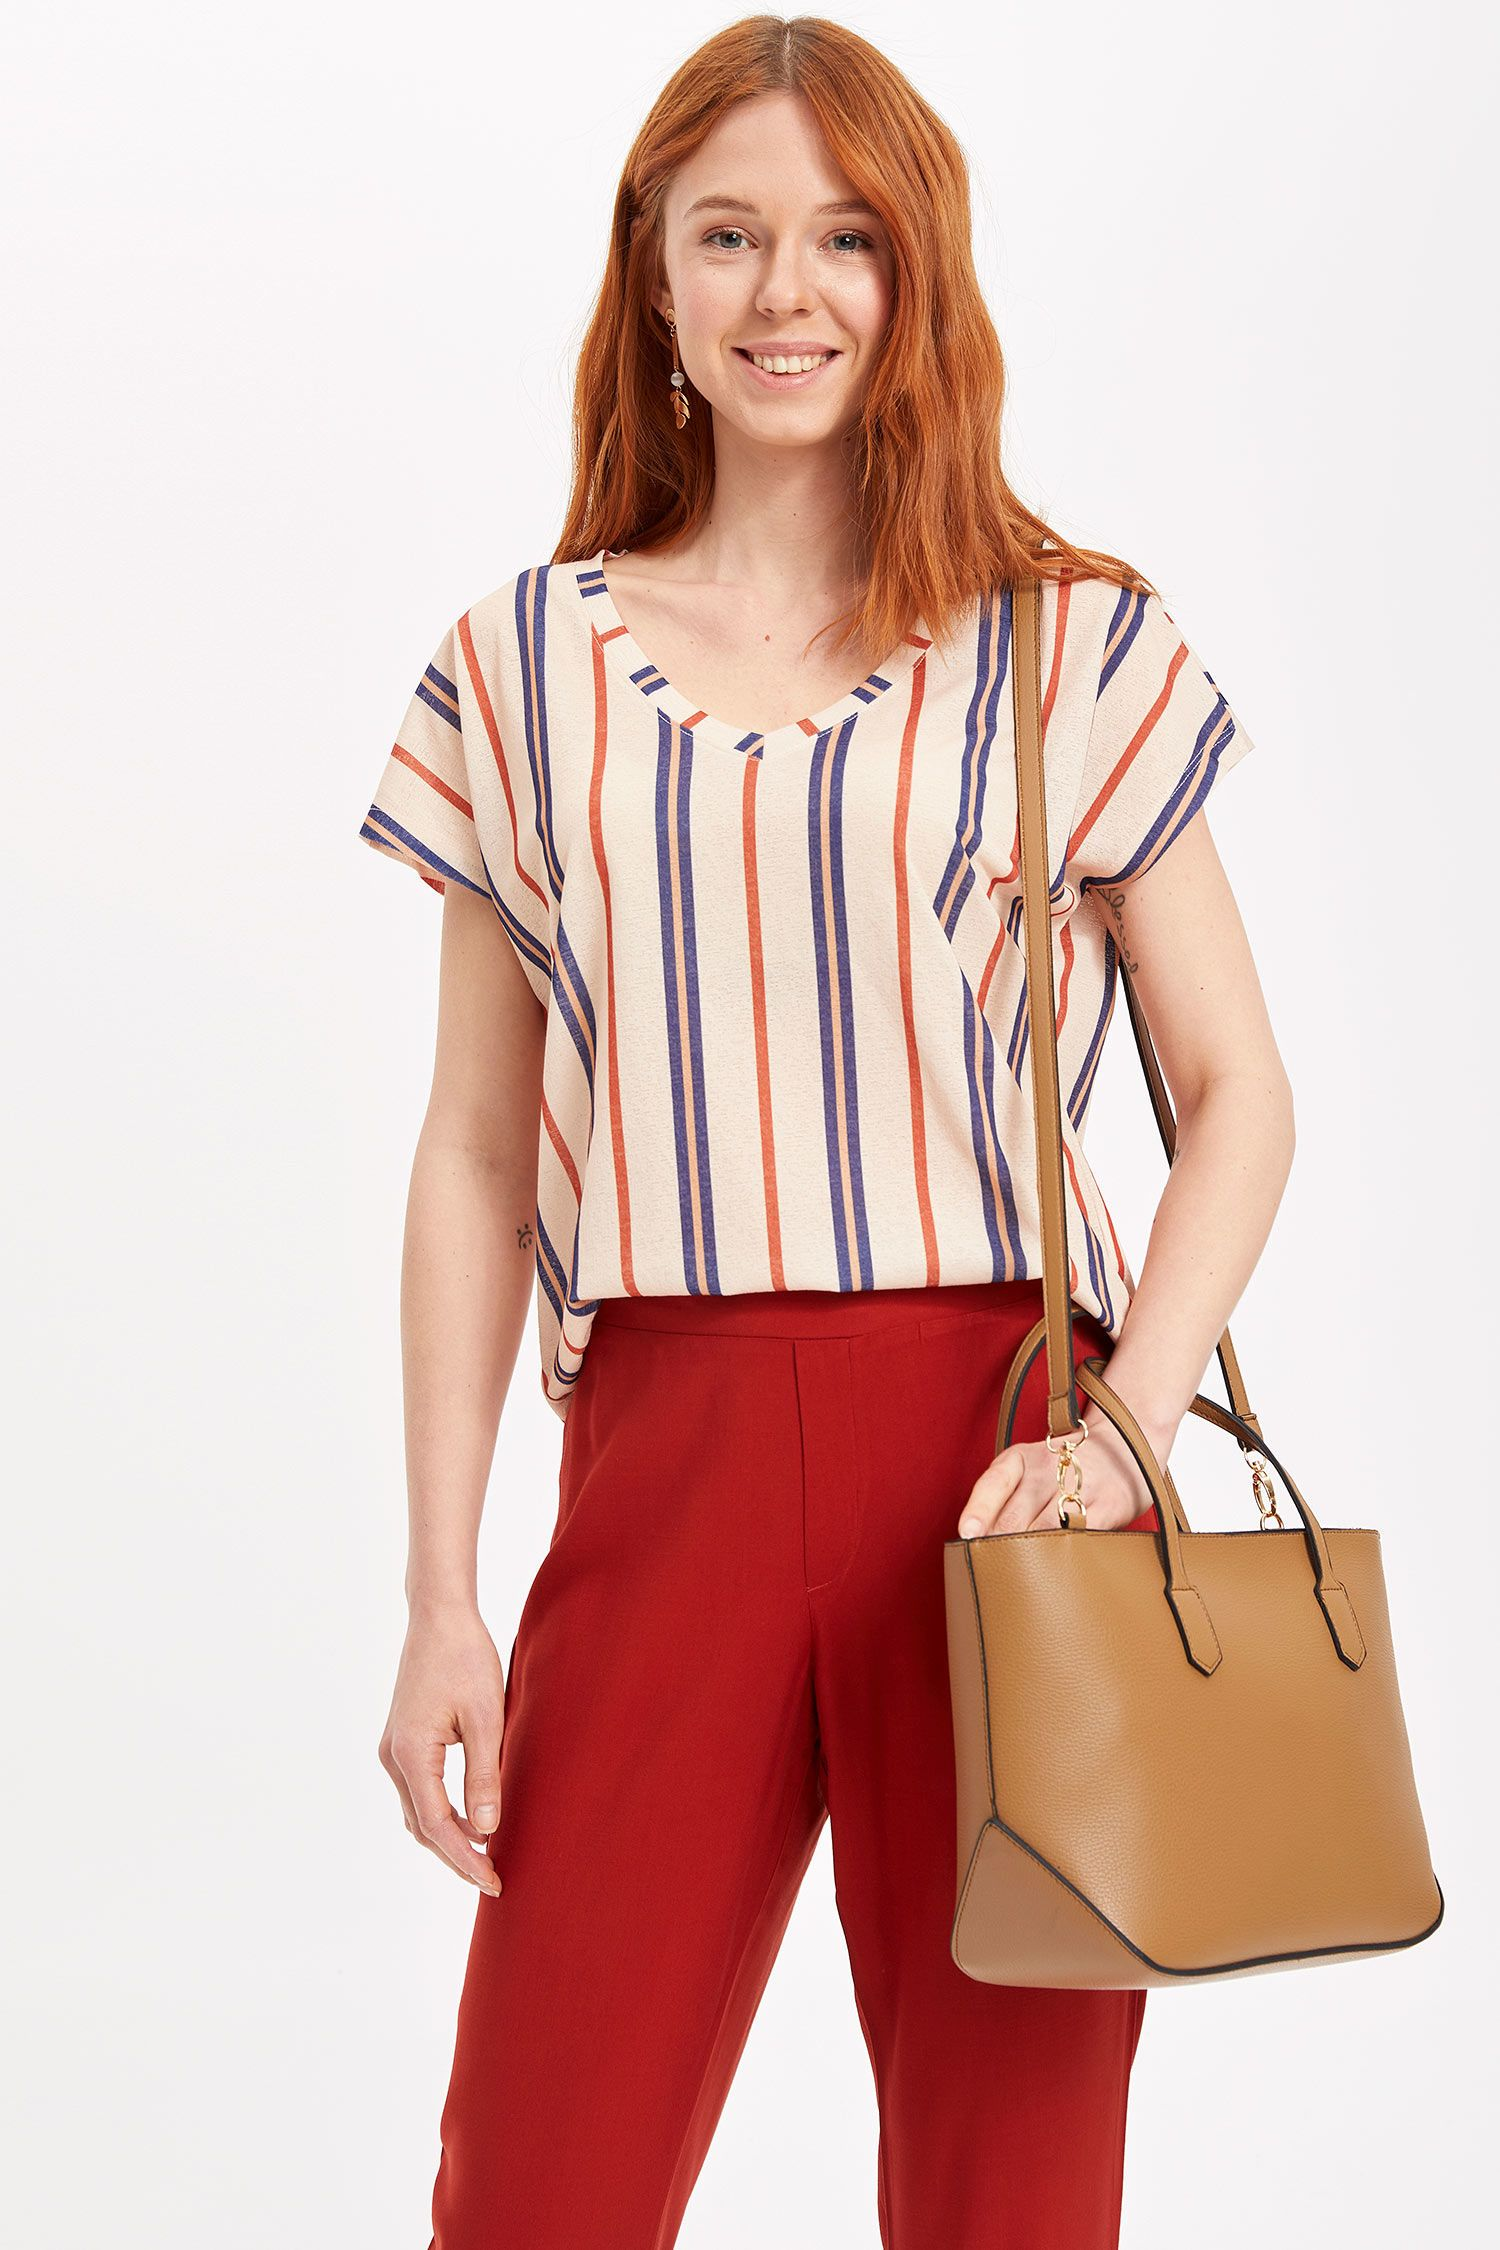 Pin By Woman Smart Casual Clothes A On Smart Casual To Buy Lc Waikiki Defacto Fashion Fall Winter 2020 Fast Fashion Brands